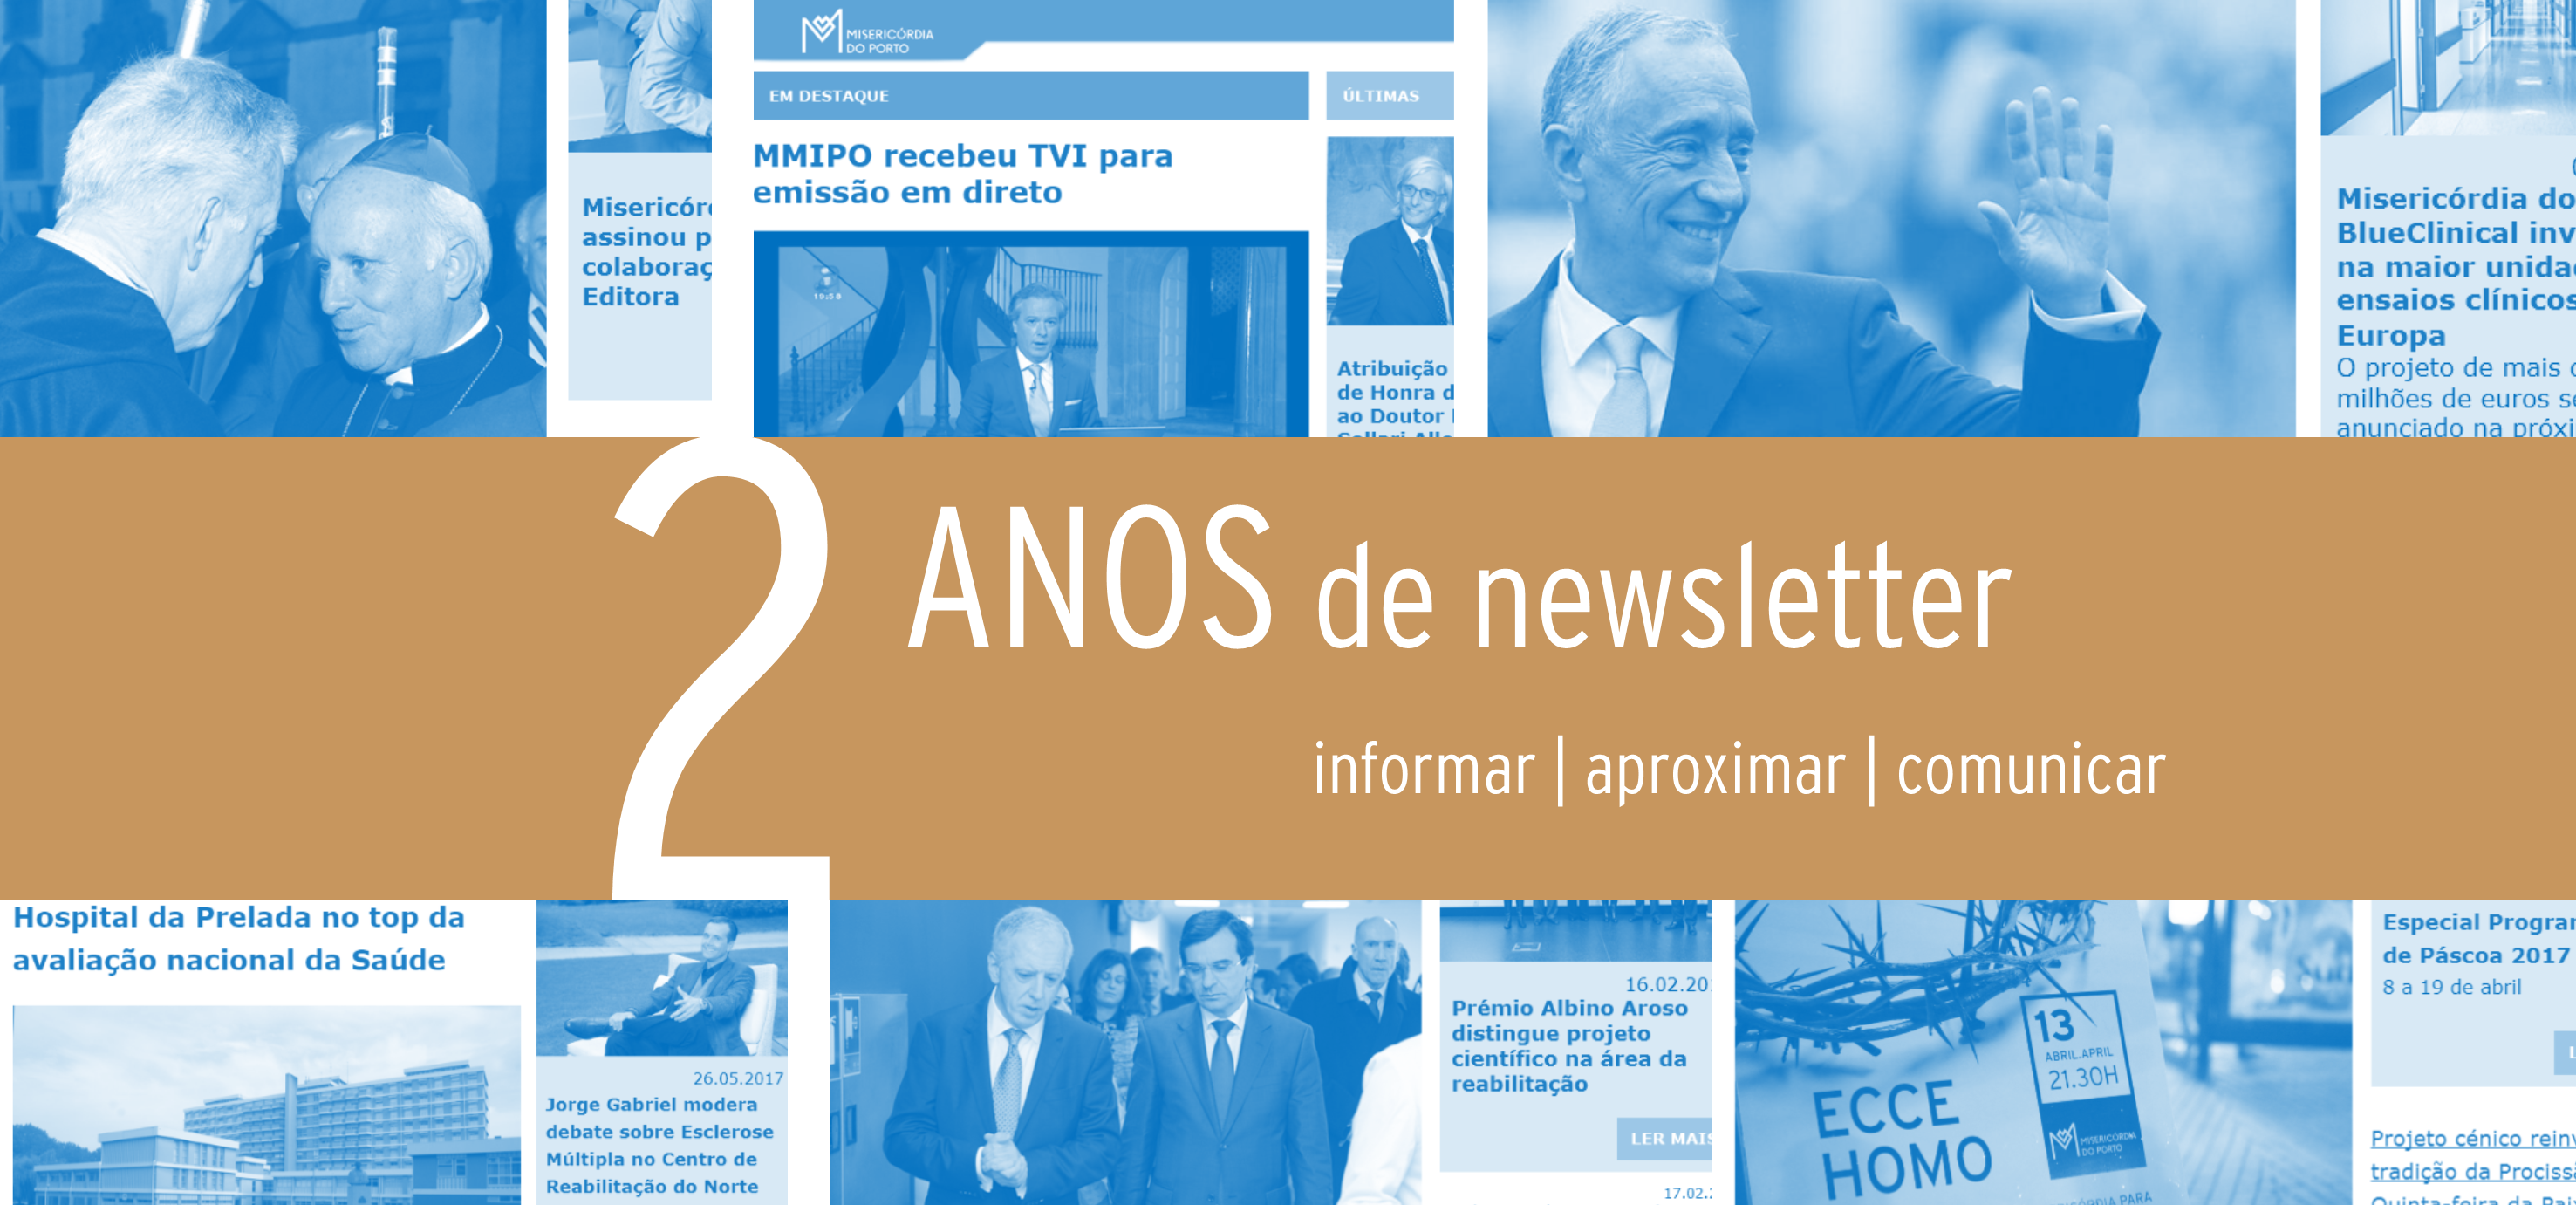 https://www.scmp.pt/assets/misc/img/noticias/2018/2018%2001%2005%20MP%202%20anos%20Newsletter/2.%C2%BA%20aniversario%20newsletter.png